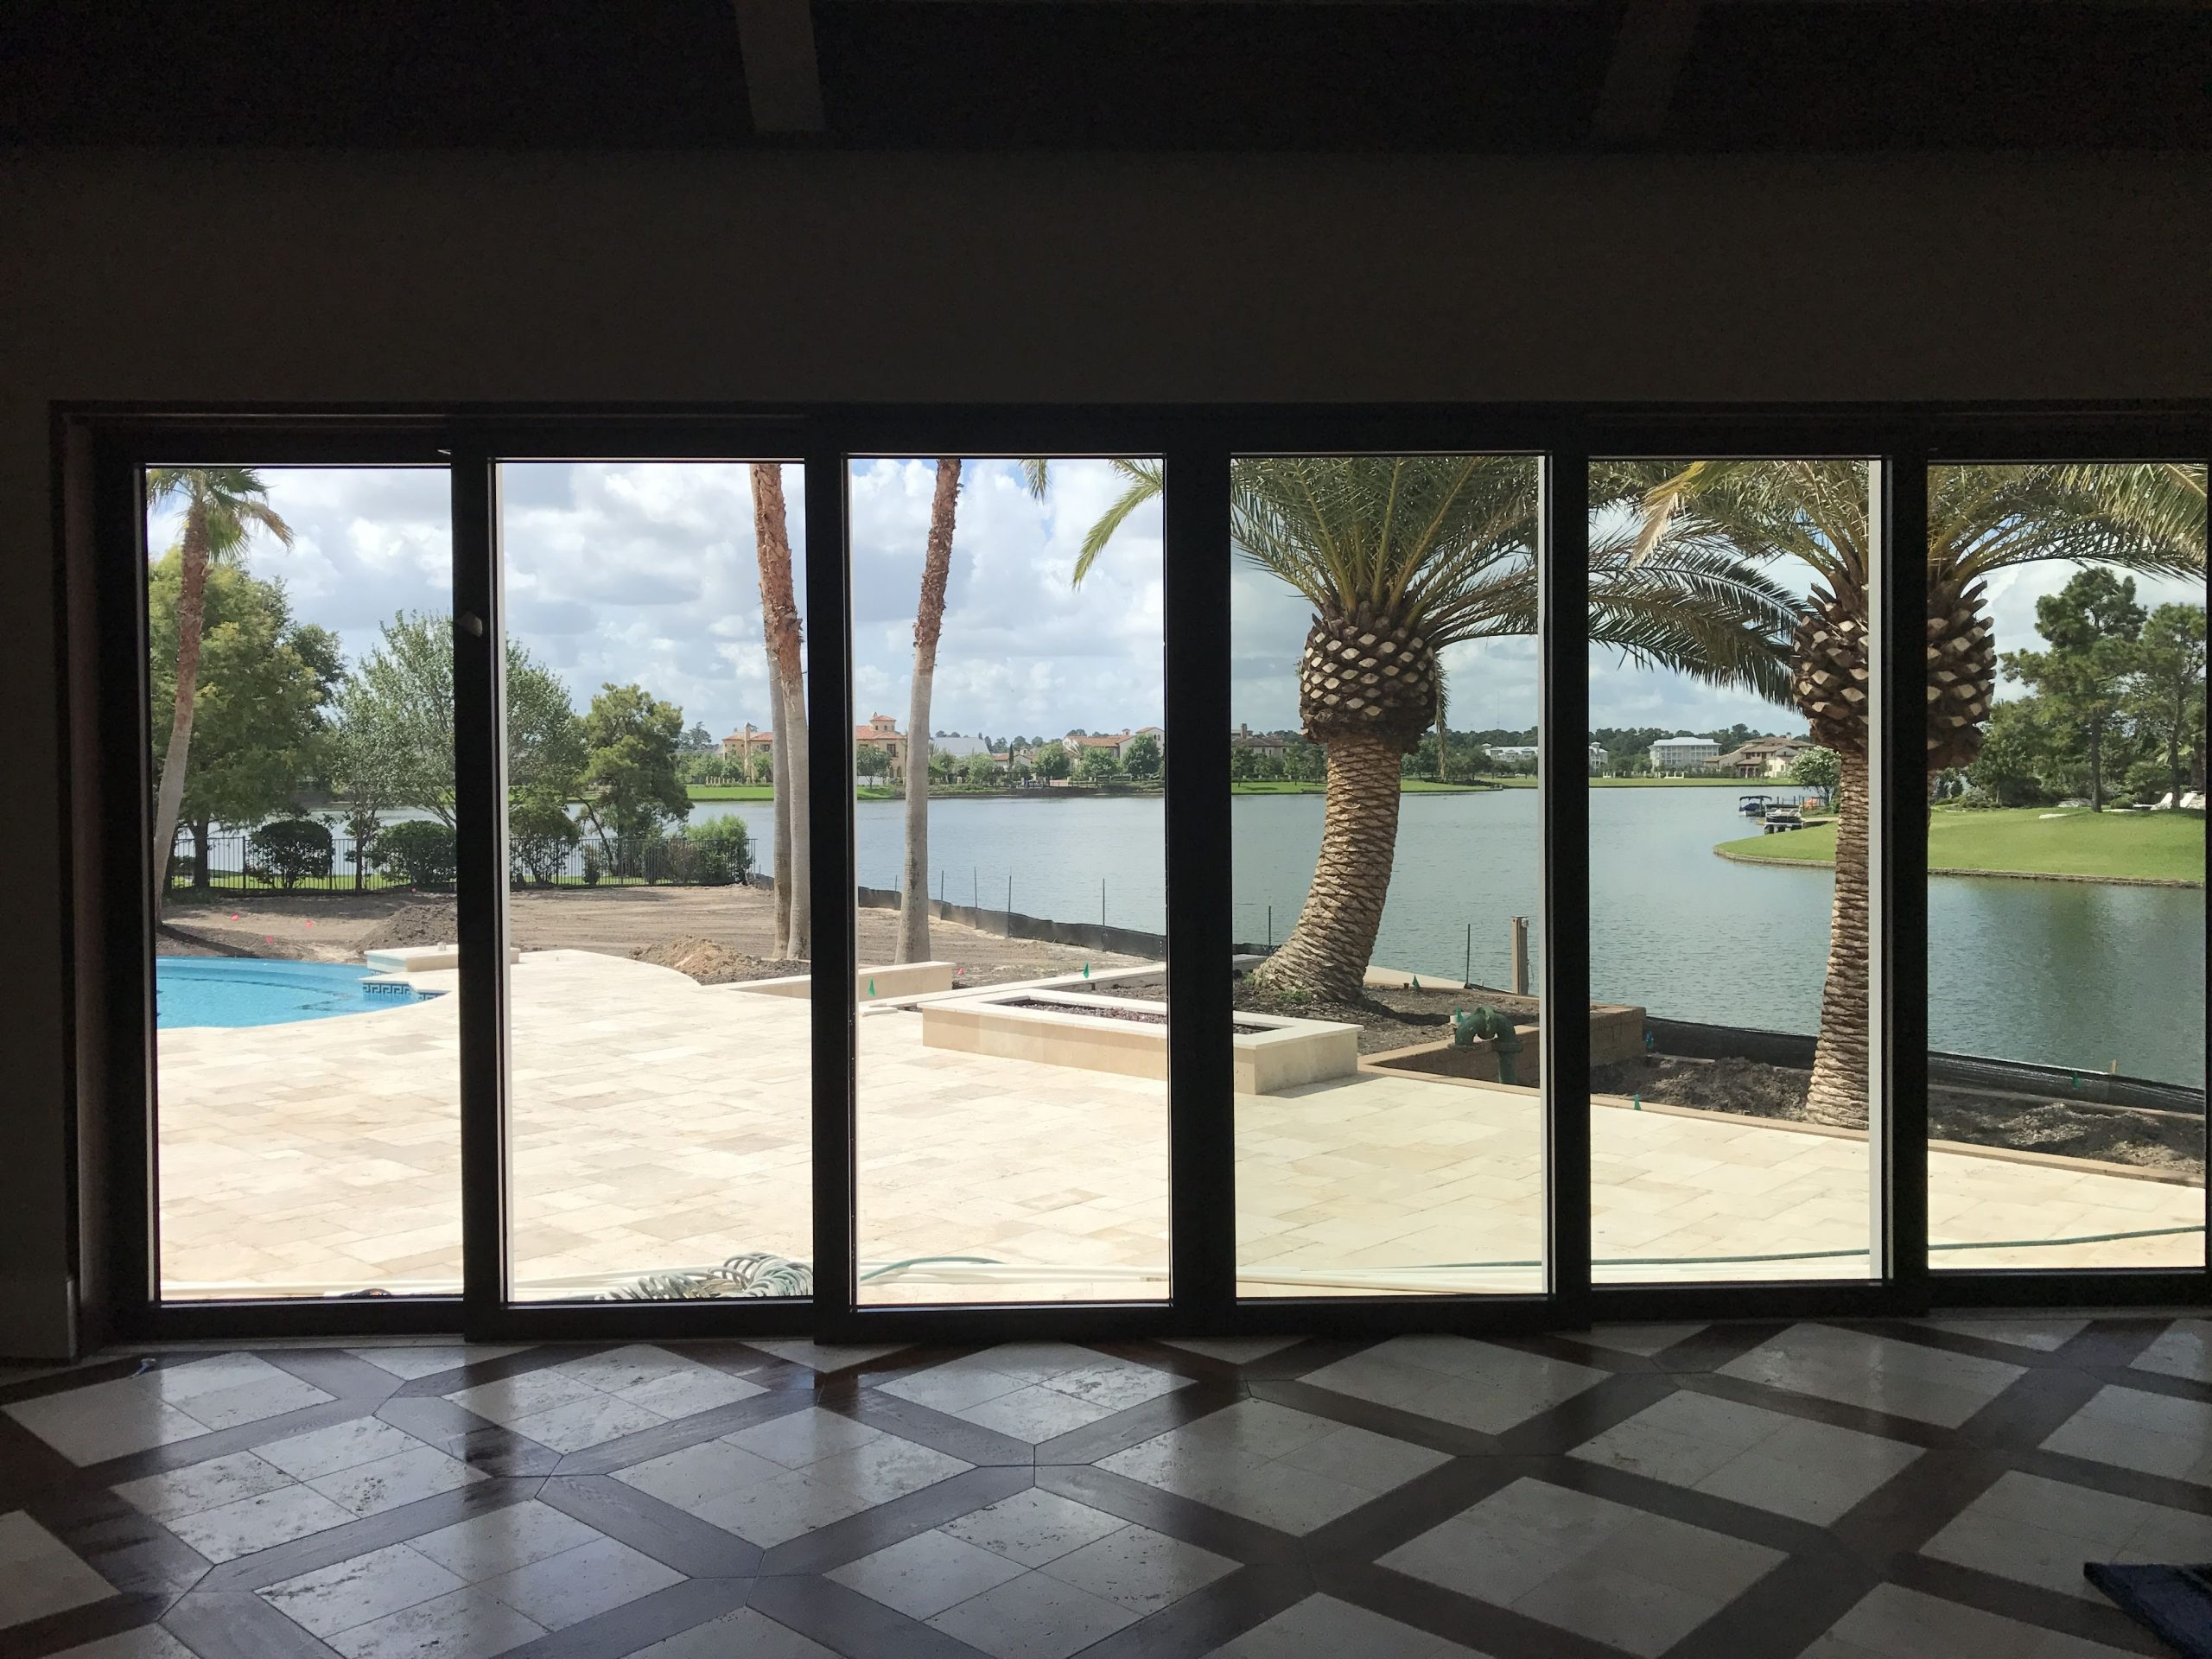 How Sun Blocking Window Film Can Make Houston Summers More Bearable